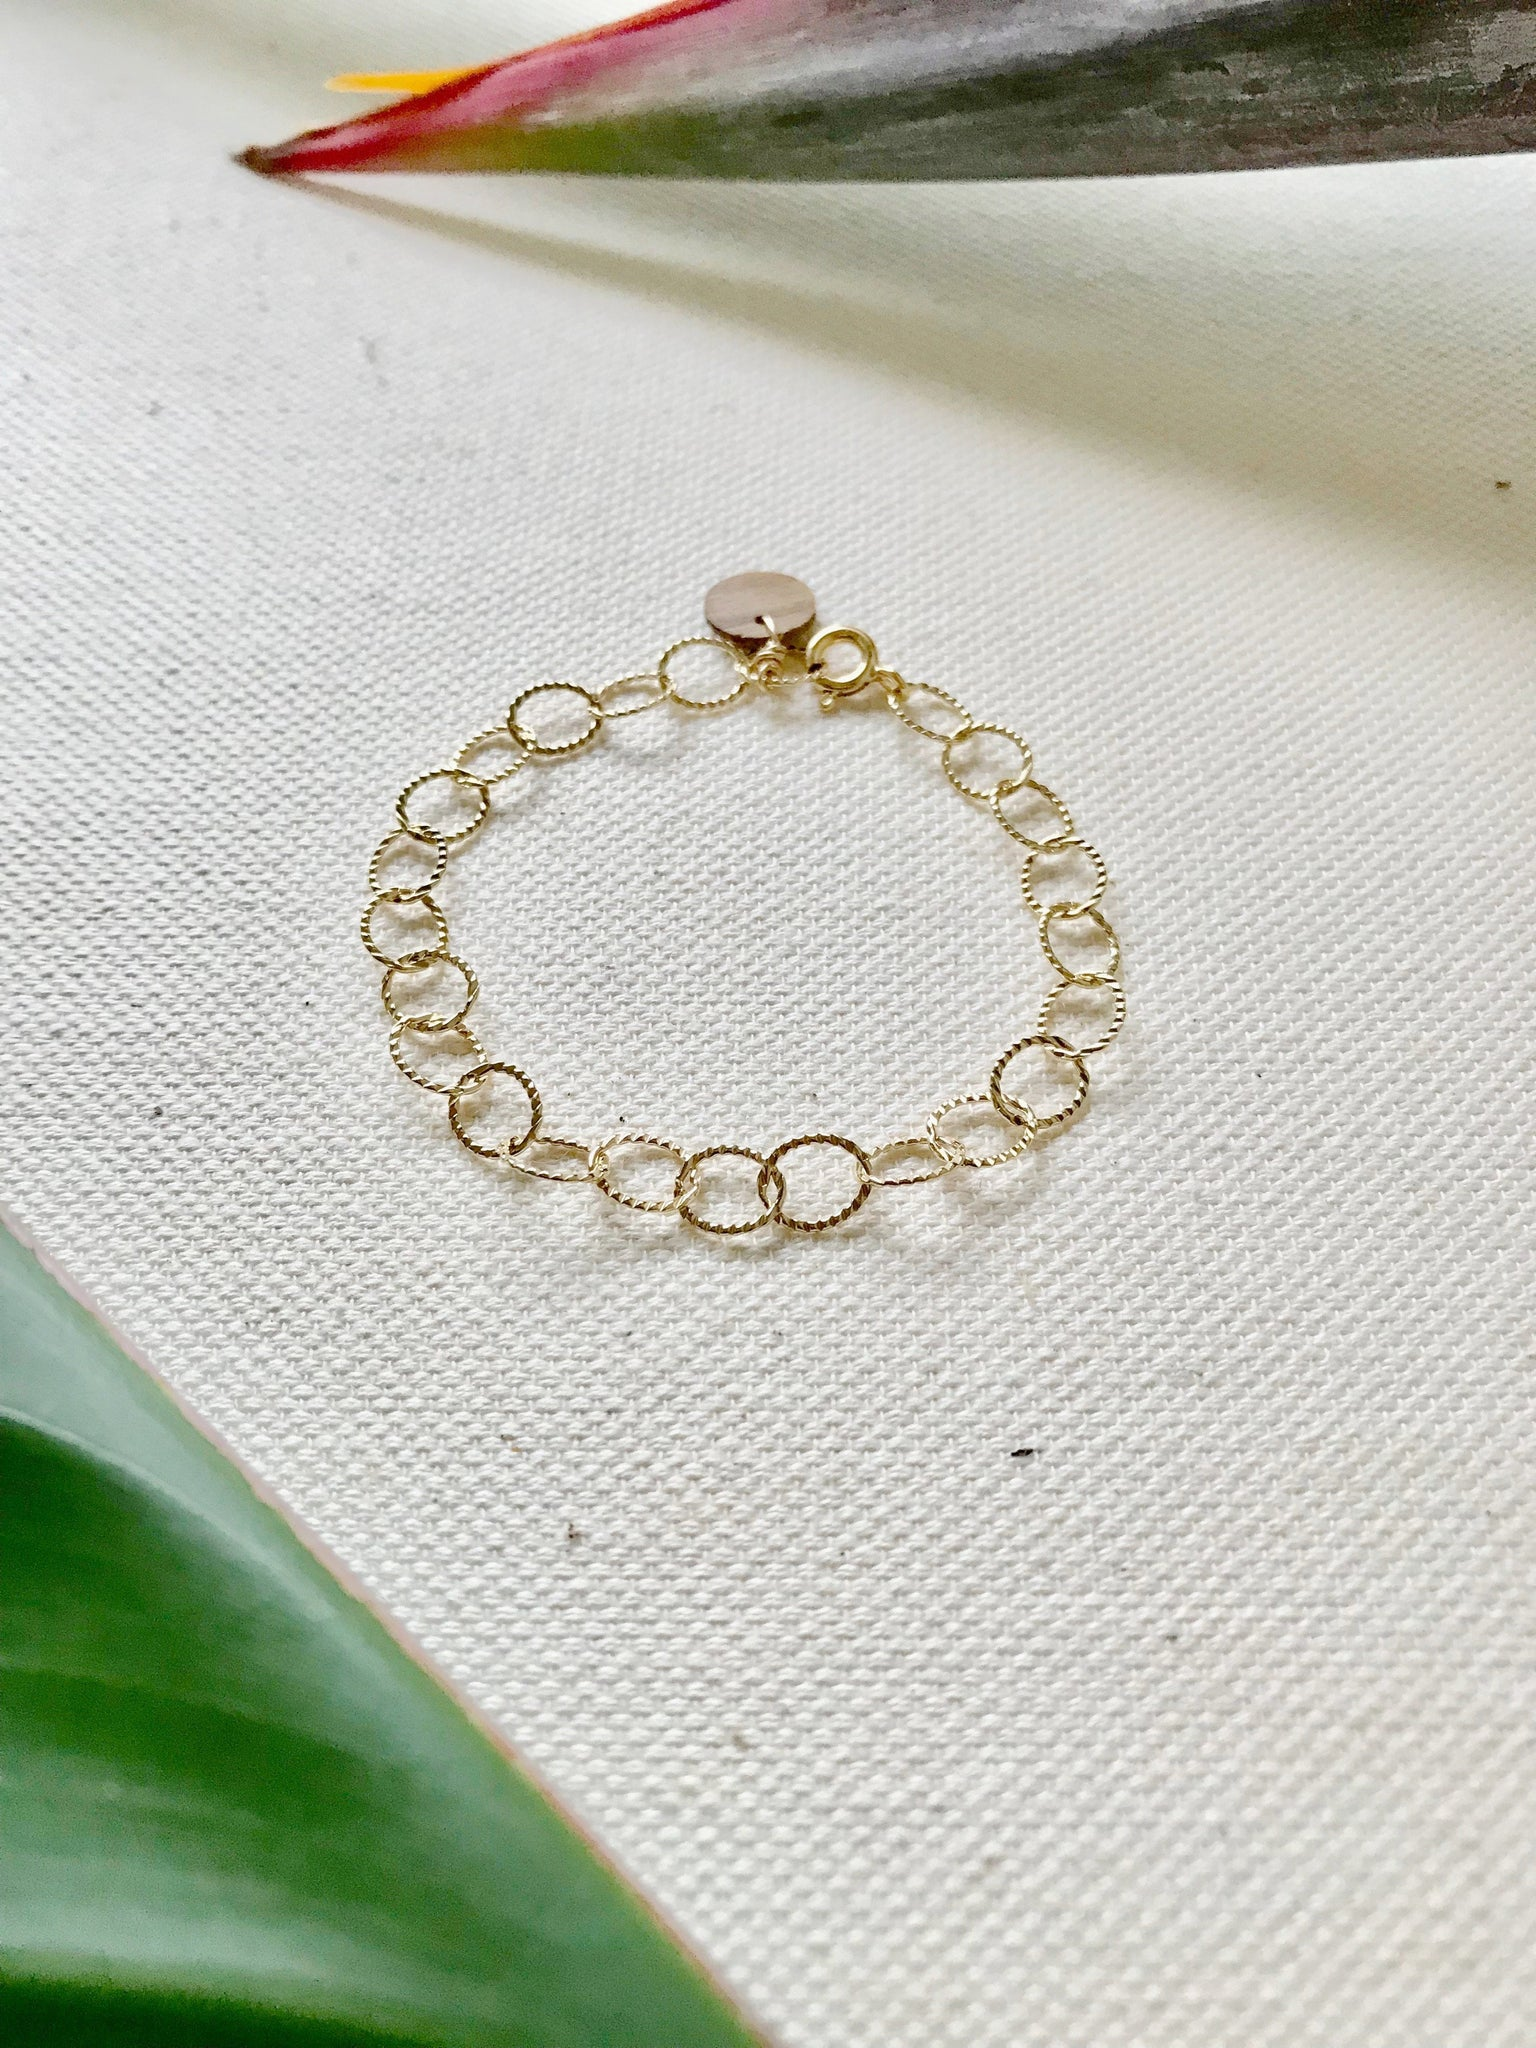 Textured Oval Be Gold Bracelet/Anklet